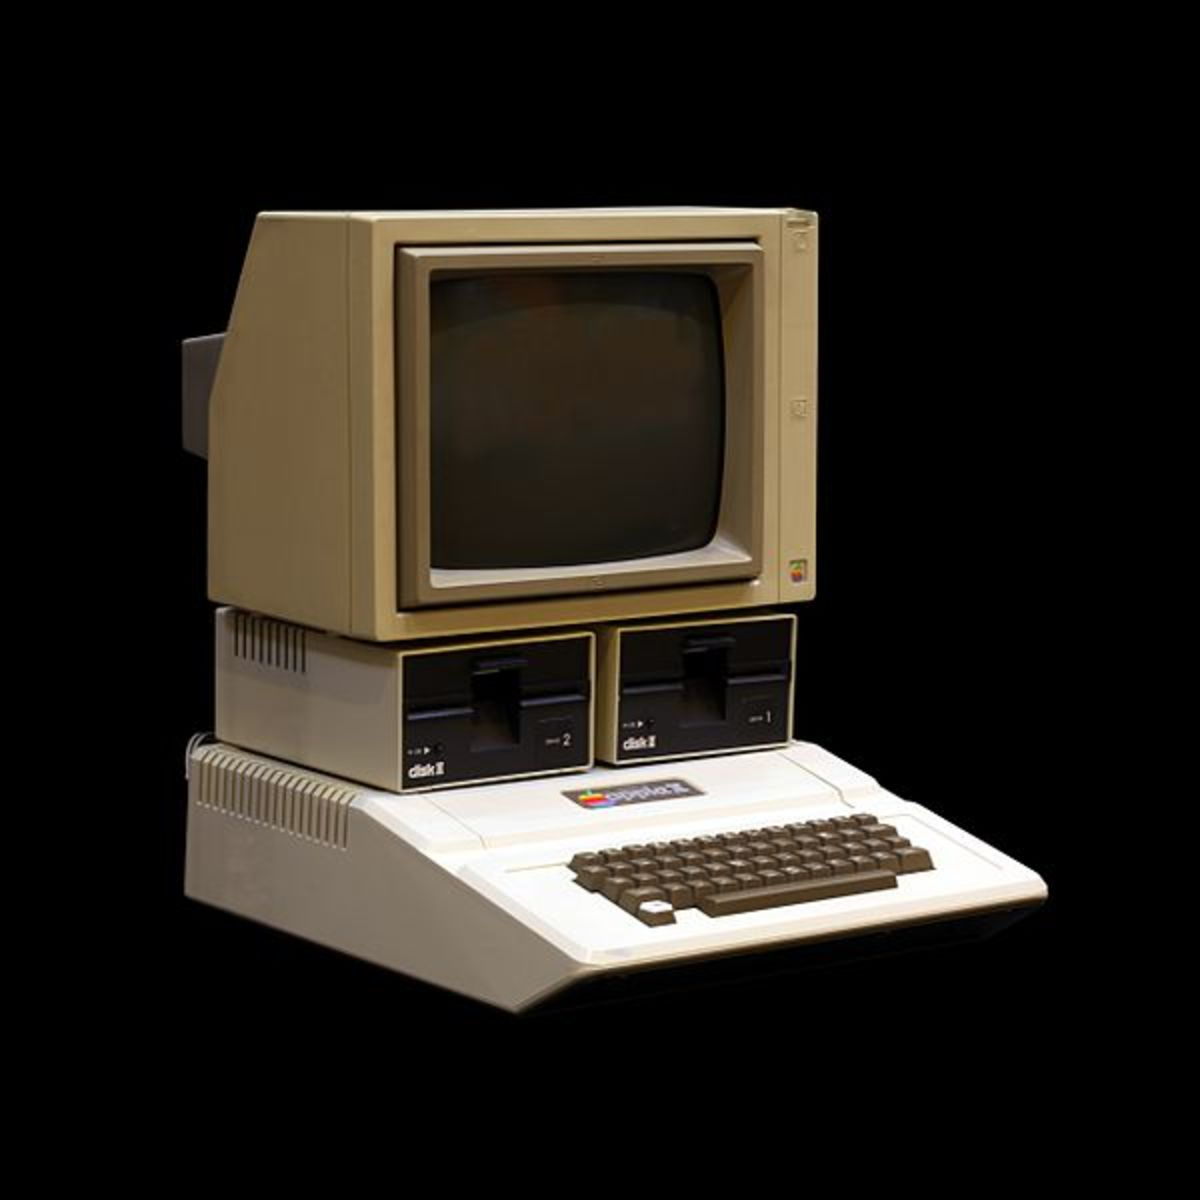 Apple II, the personal computer of 1977